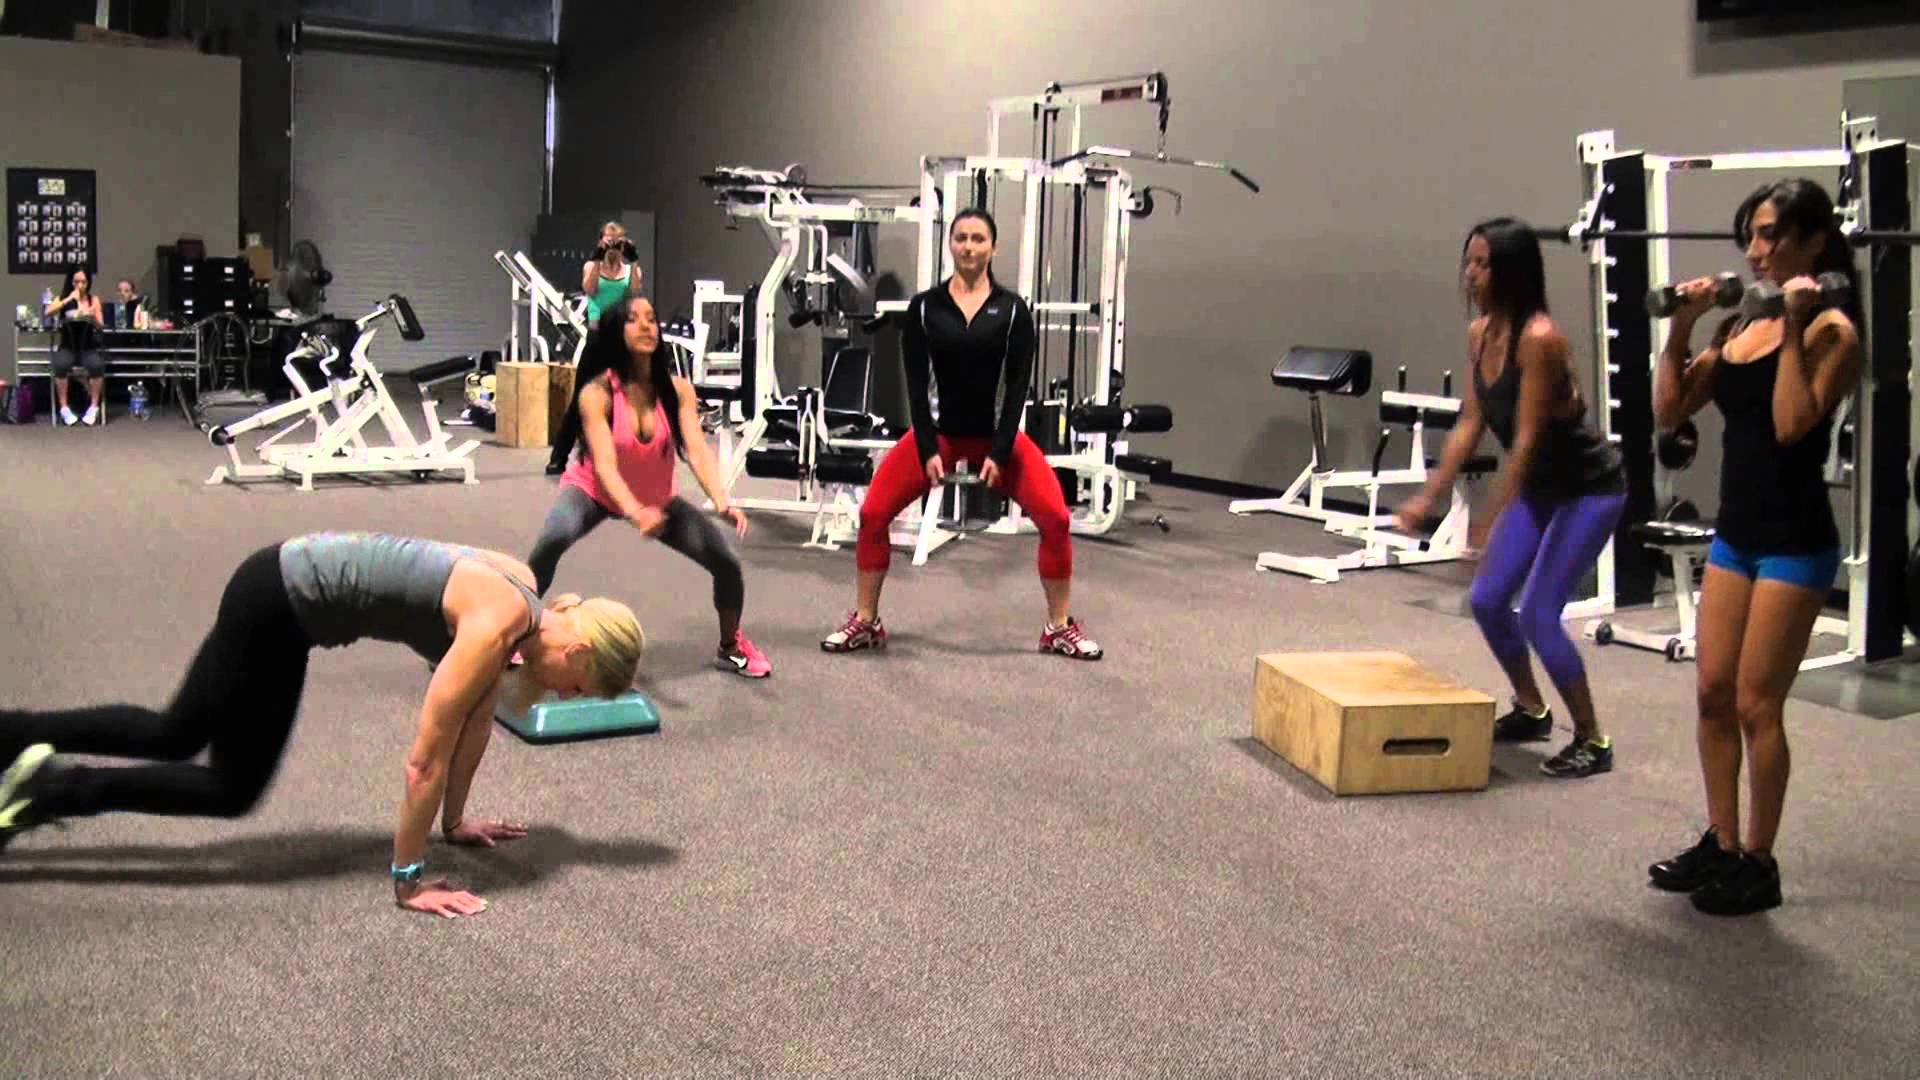 Introducing Small Group Training To The Athletic Circuit Timesaving Fullbody Fitnessrx For Women Fitworks Equipment